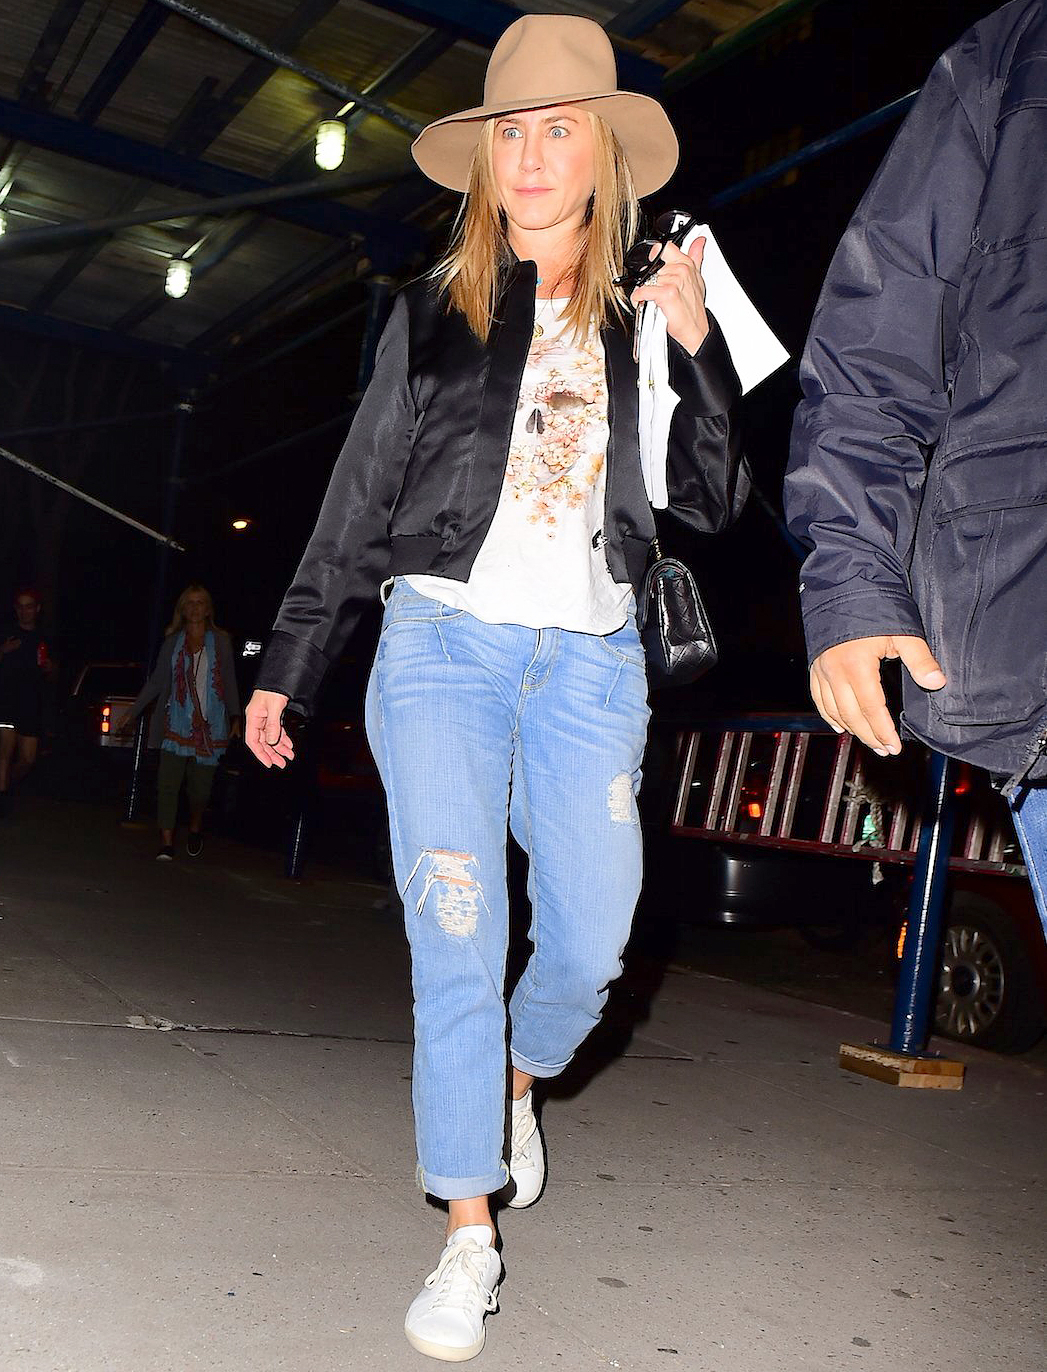 Jennifer Aniston was spotted arriving in NYC on Thursday night.